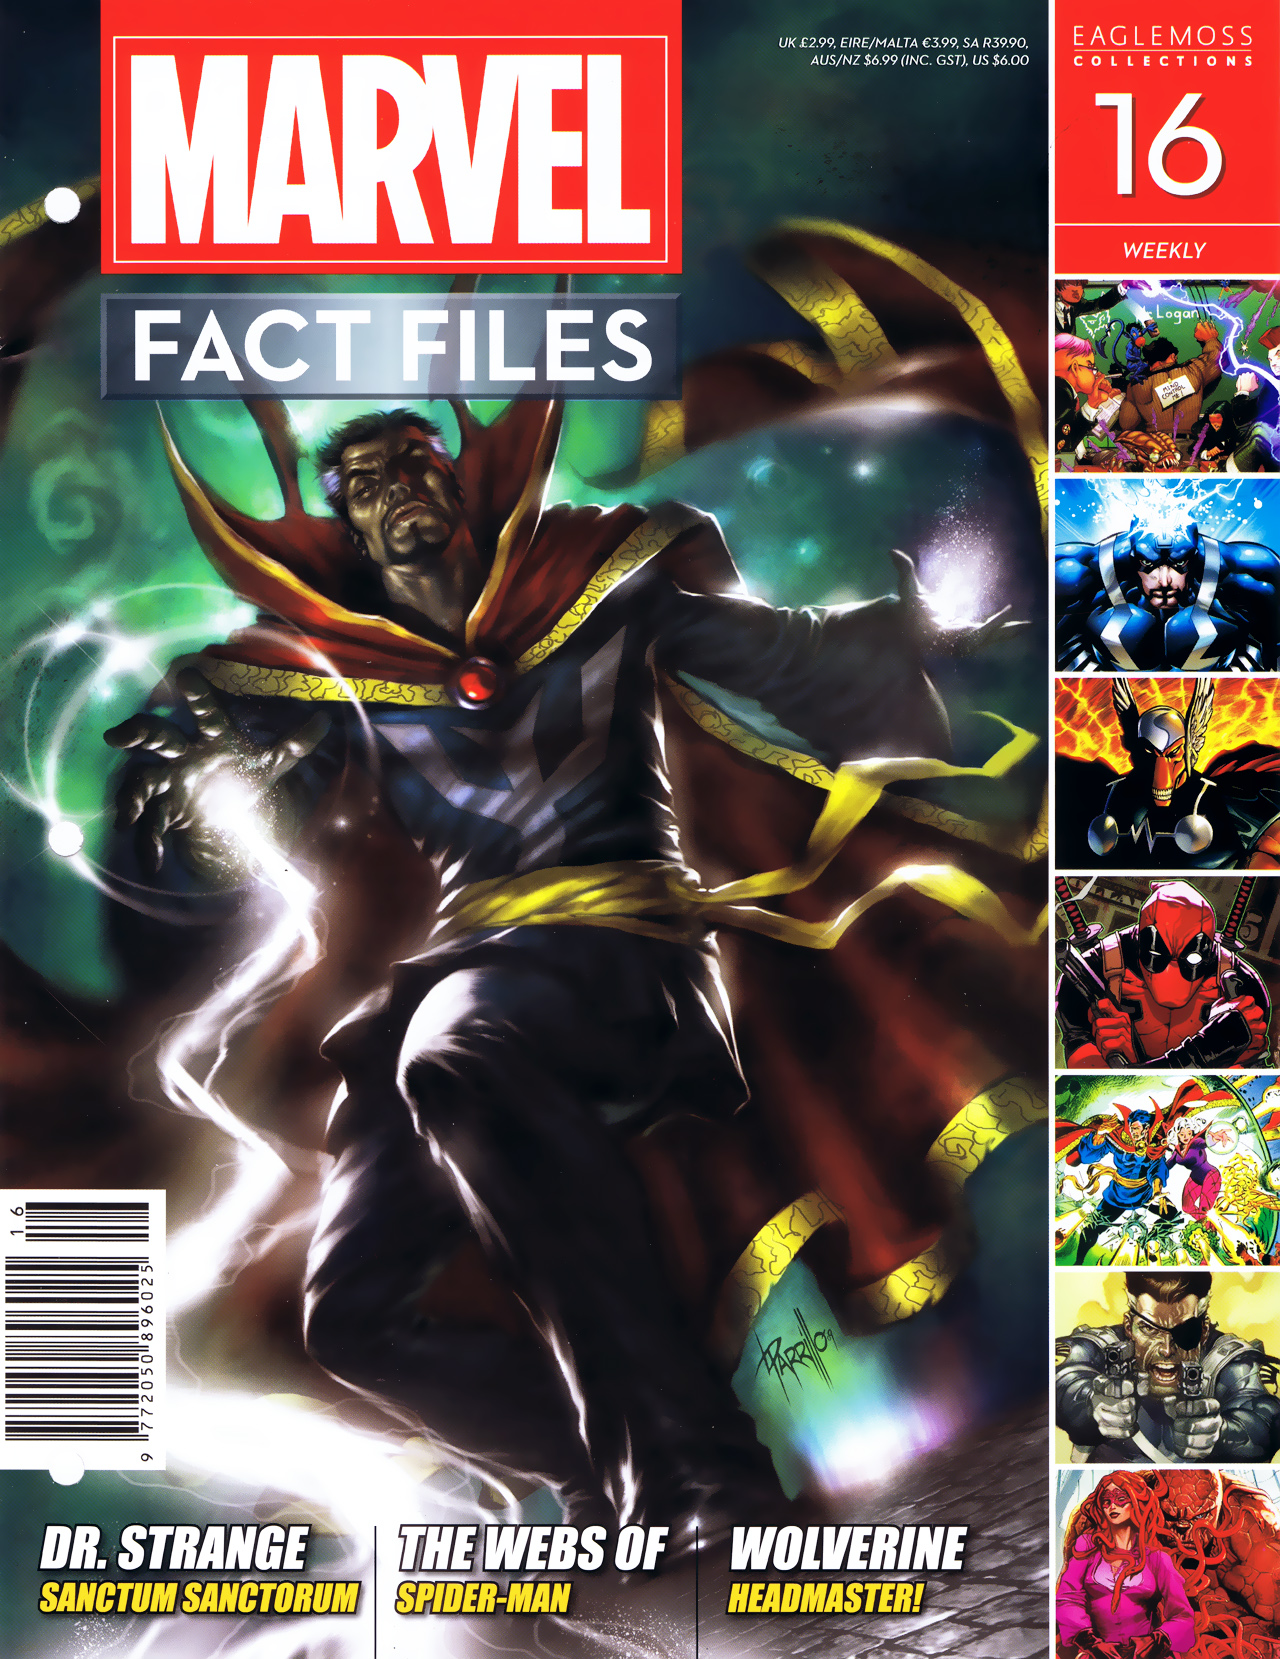 Marvel Fact Files 16 Page 1